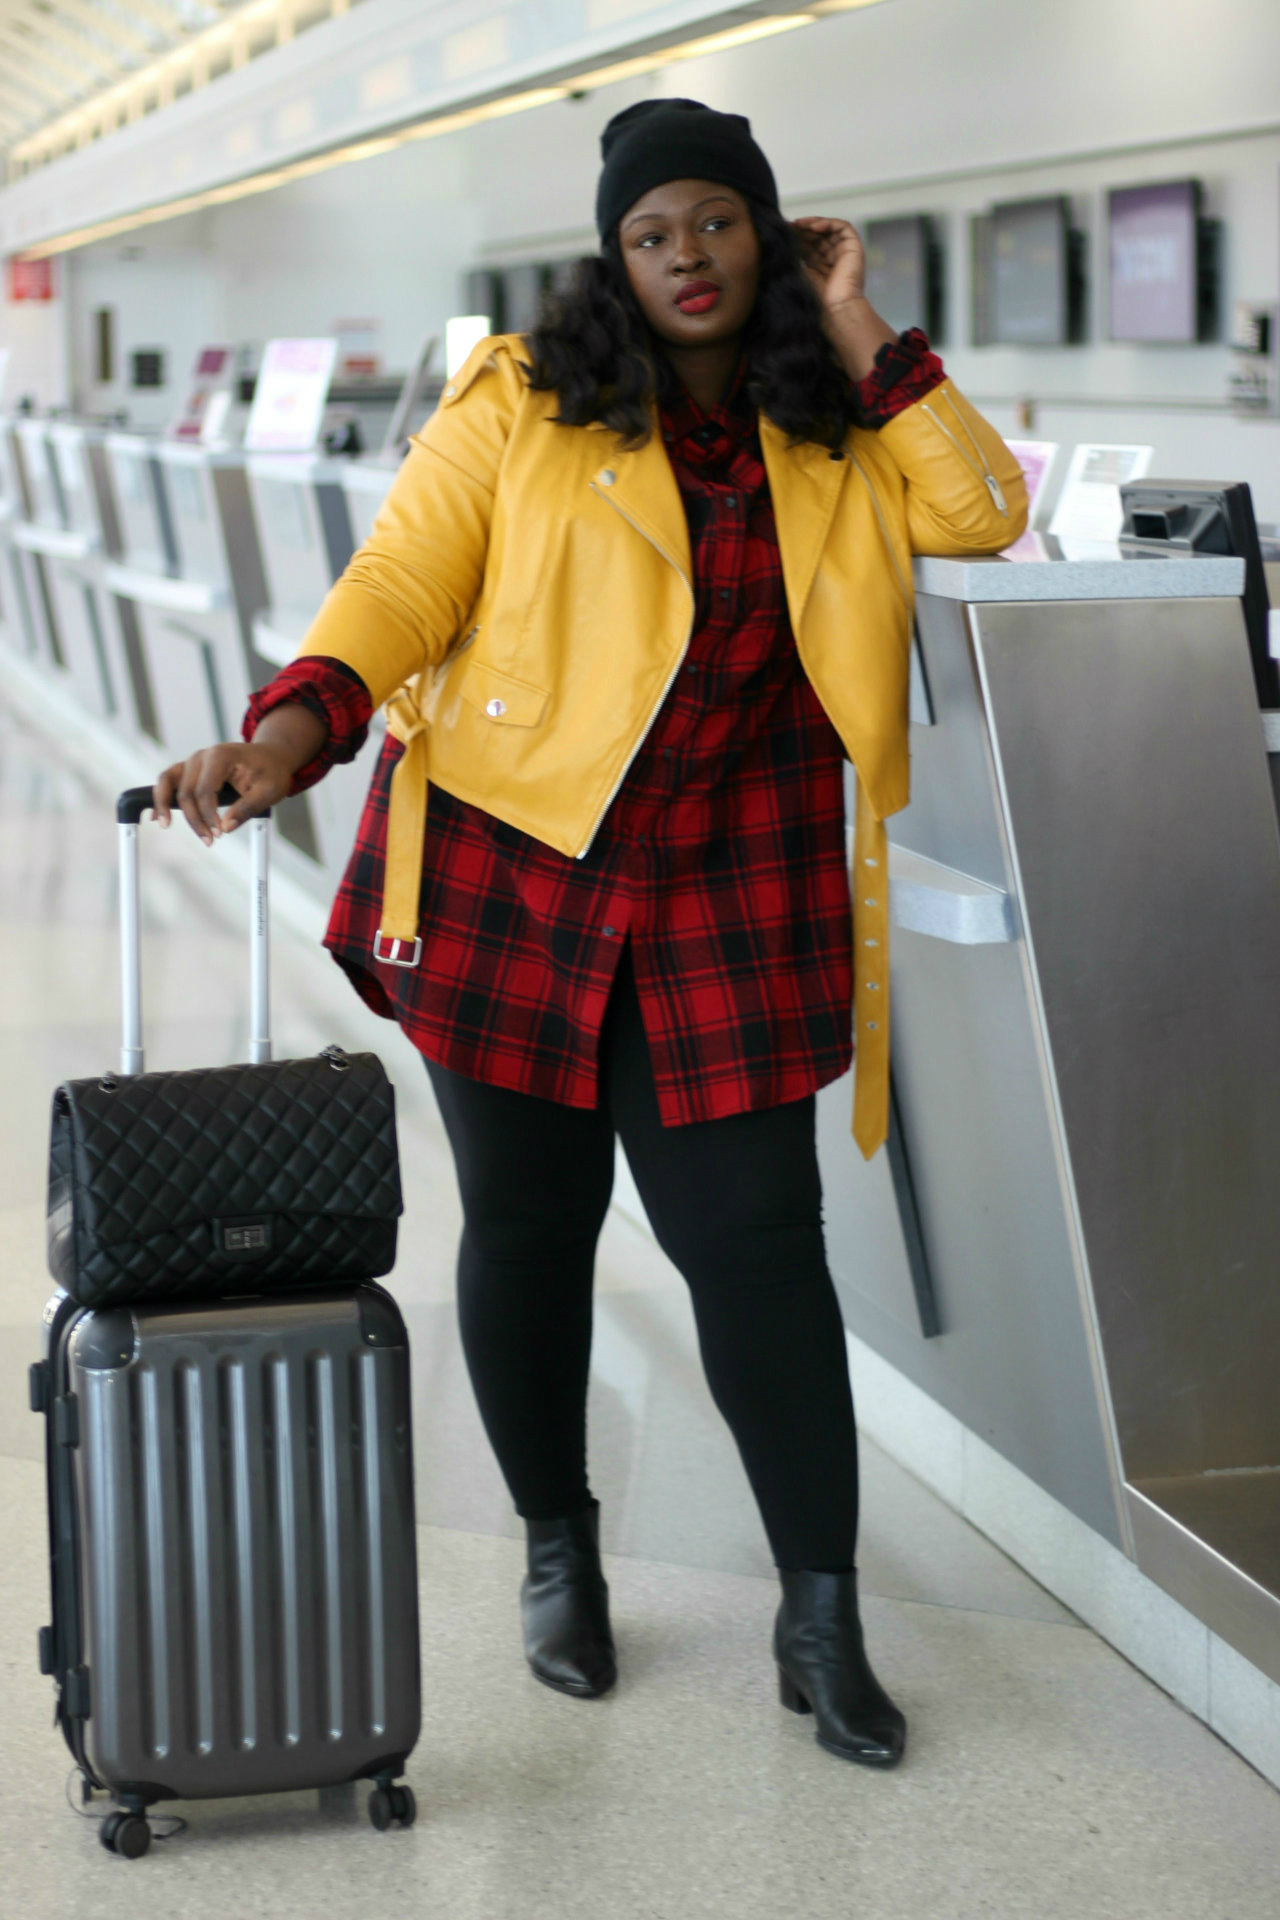 walmart plaid TRAVEL outfit